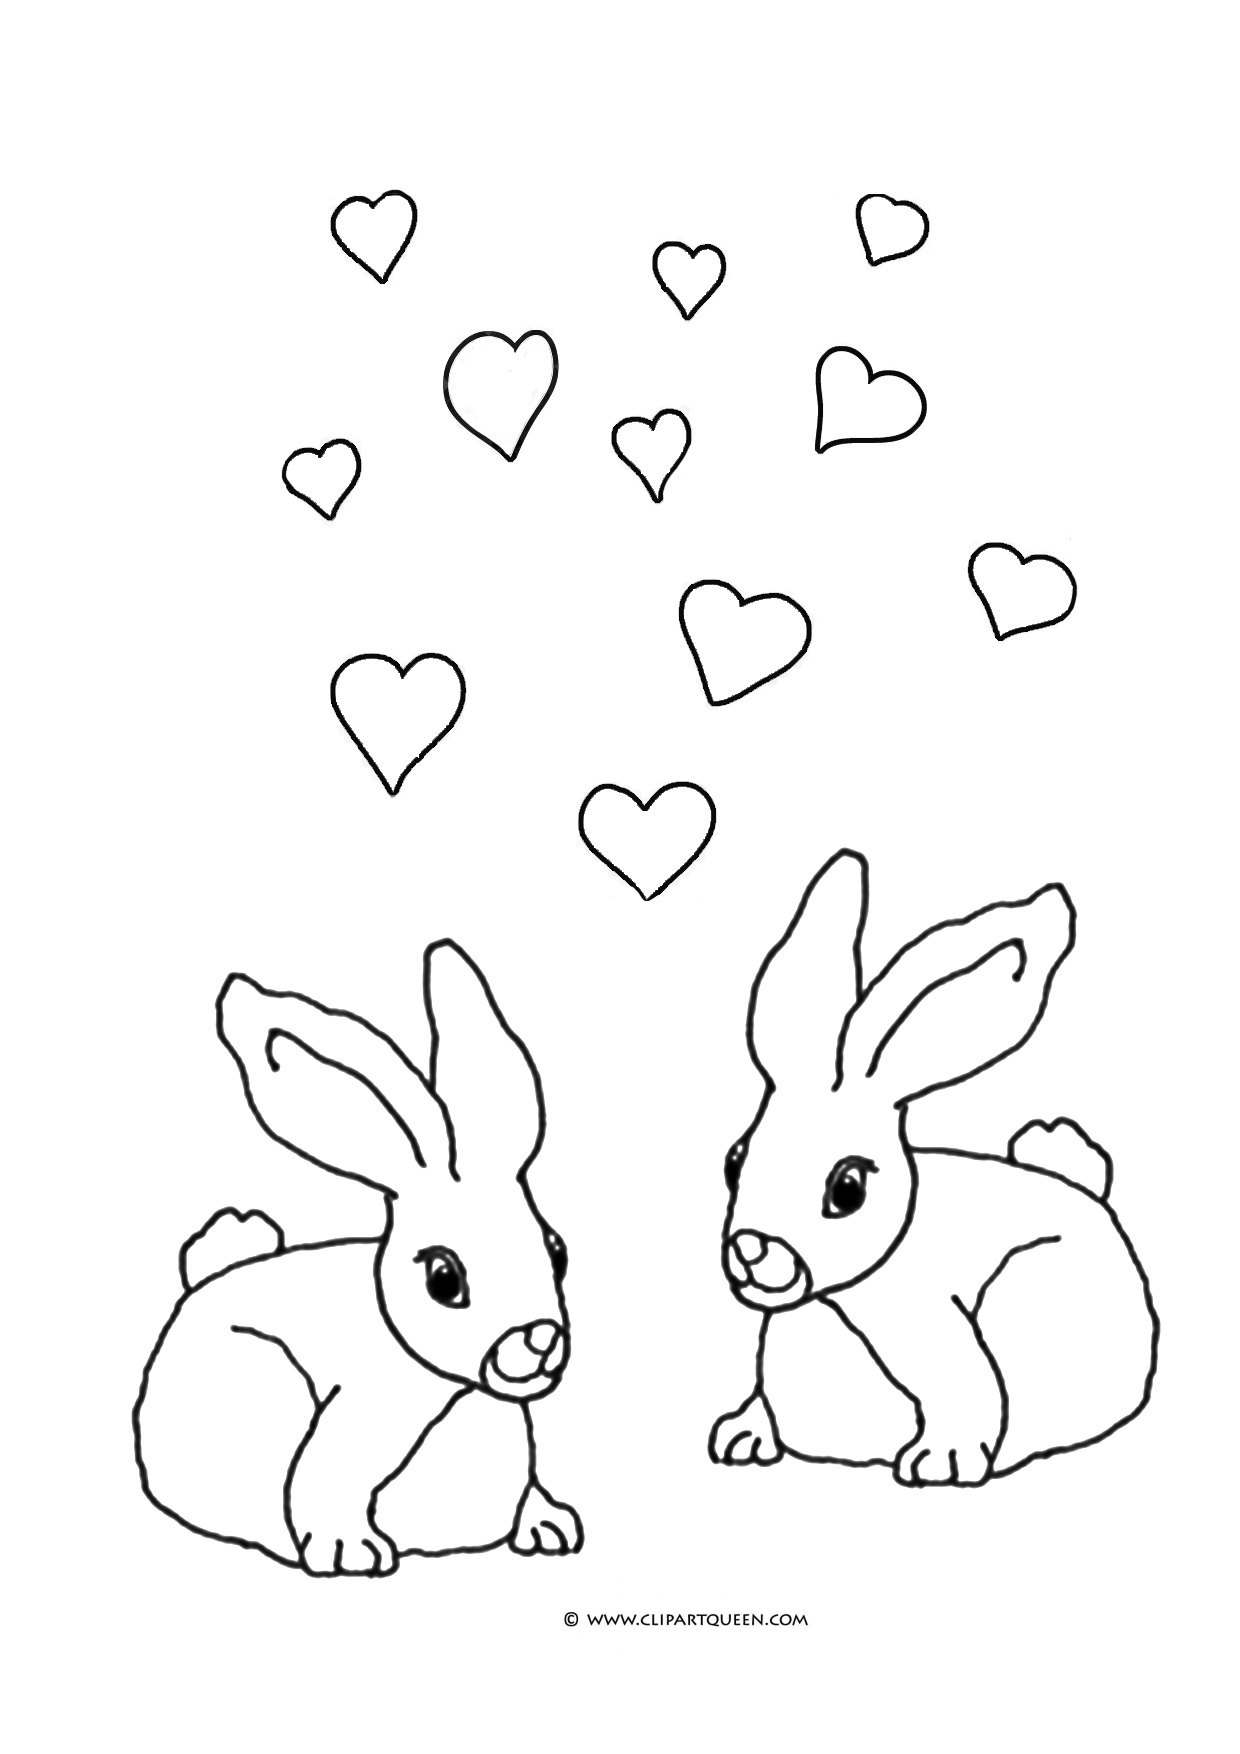 11 Valentine\'s Day coloring pages